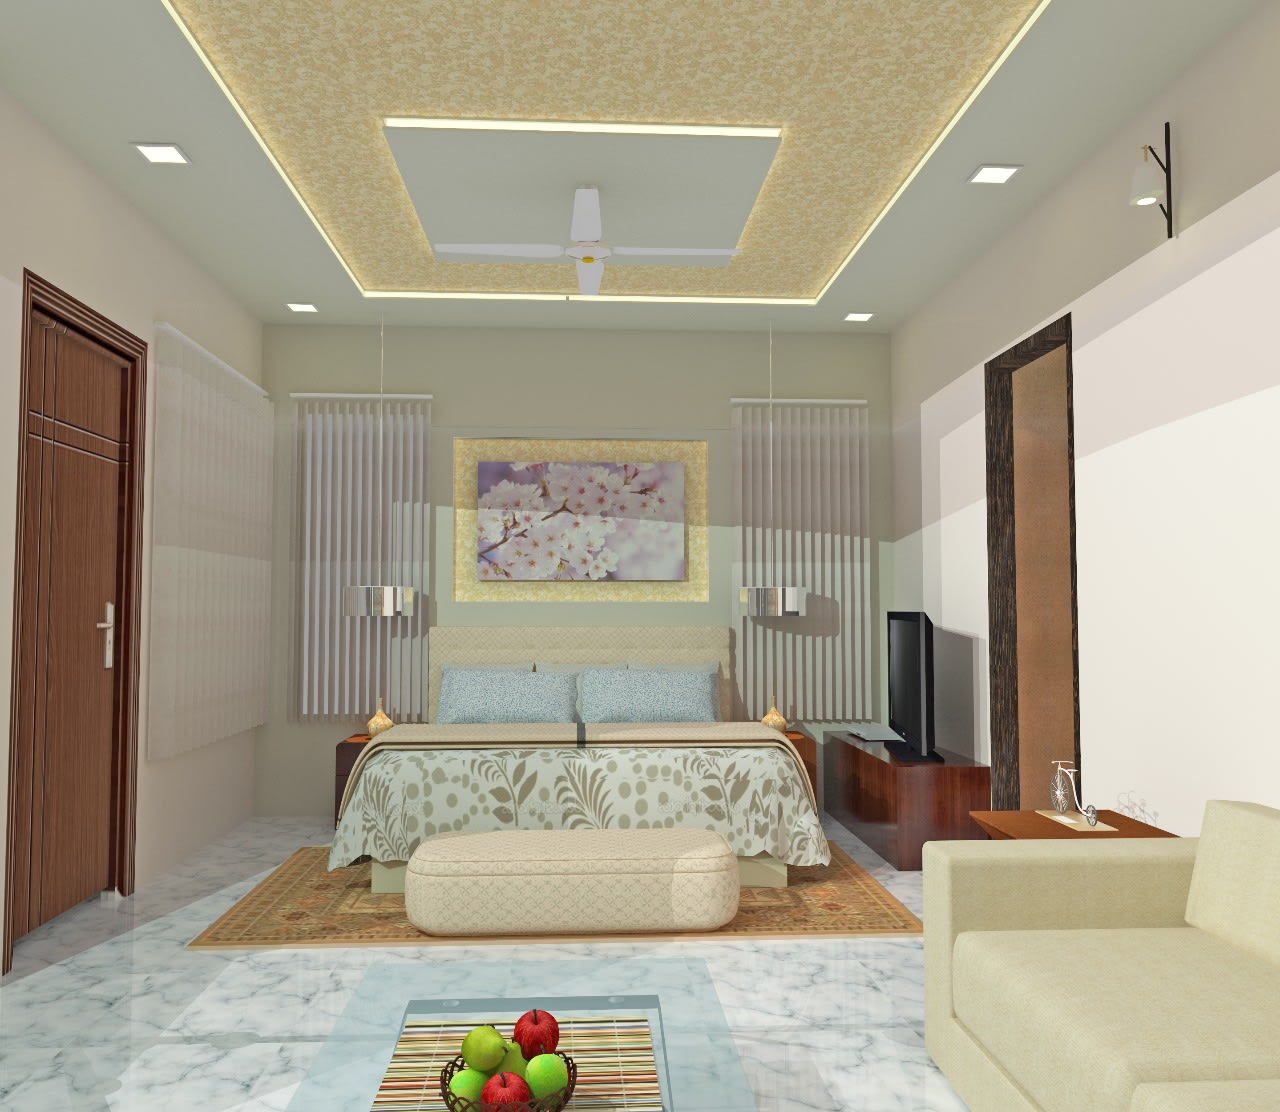 Design of a white themed bedroom with false ceiling and king sized bed by Mohammed Nazim Bedroom Contemporary | Interior Design Photos & Ideas